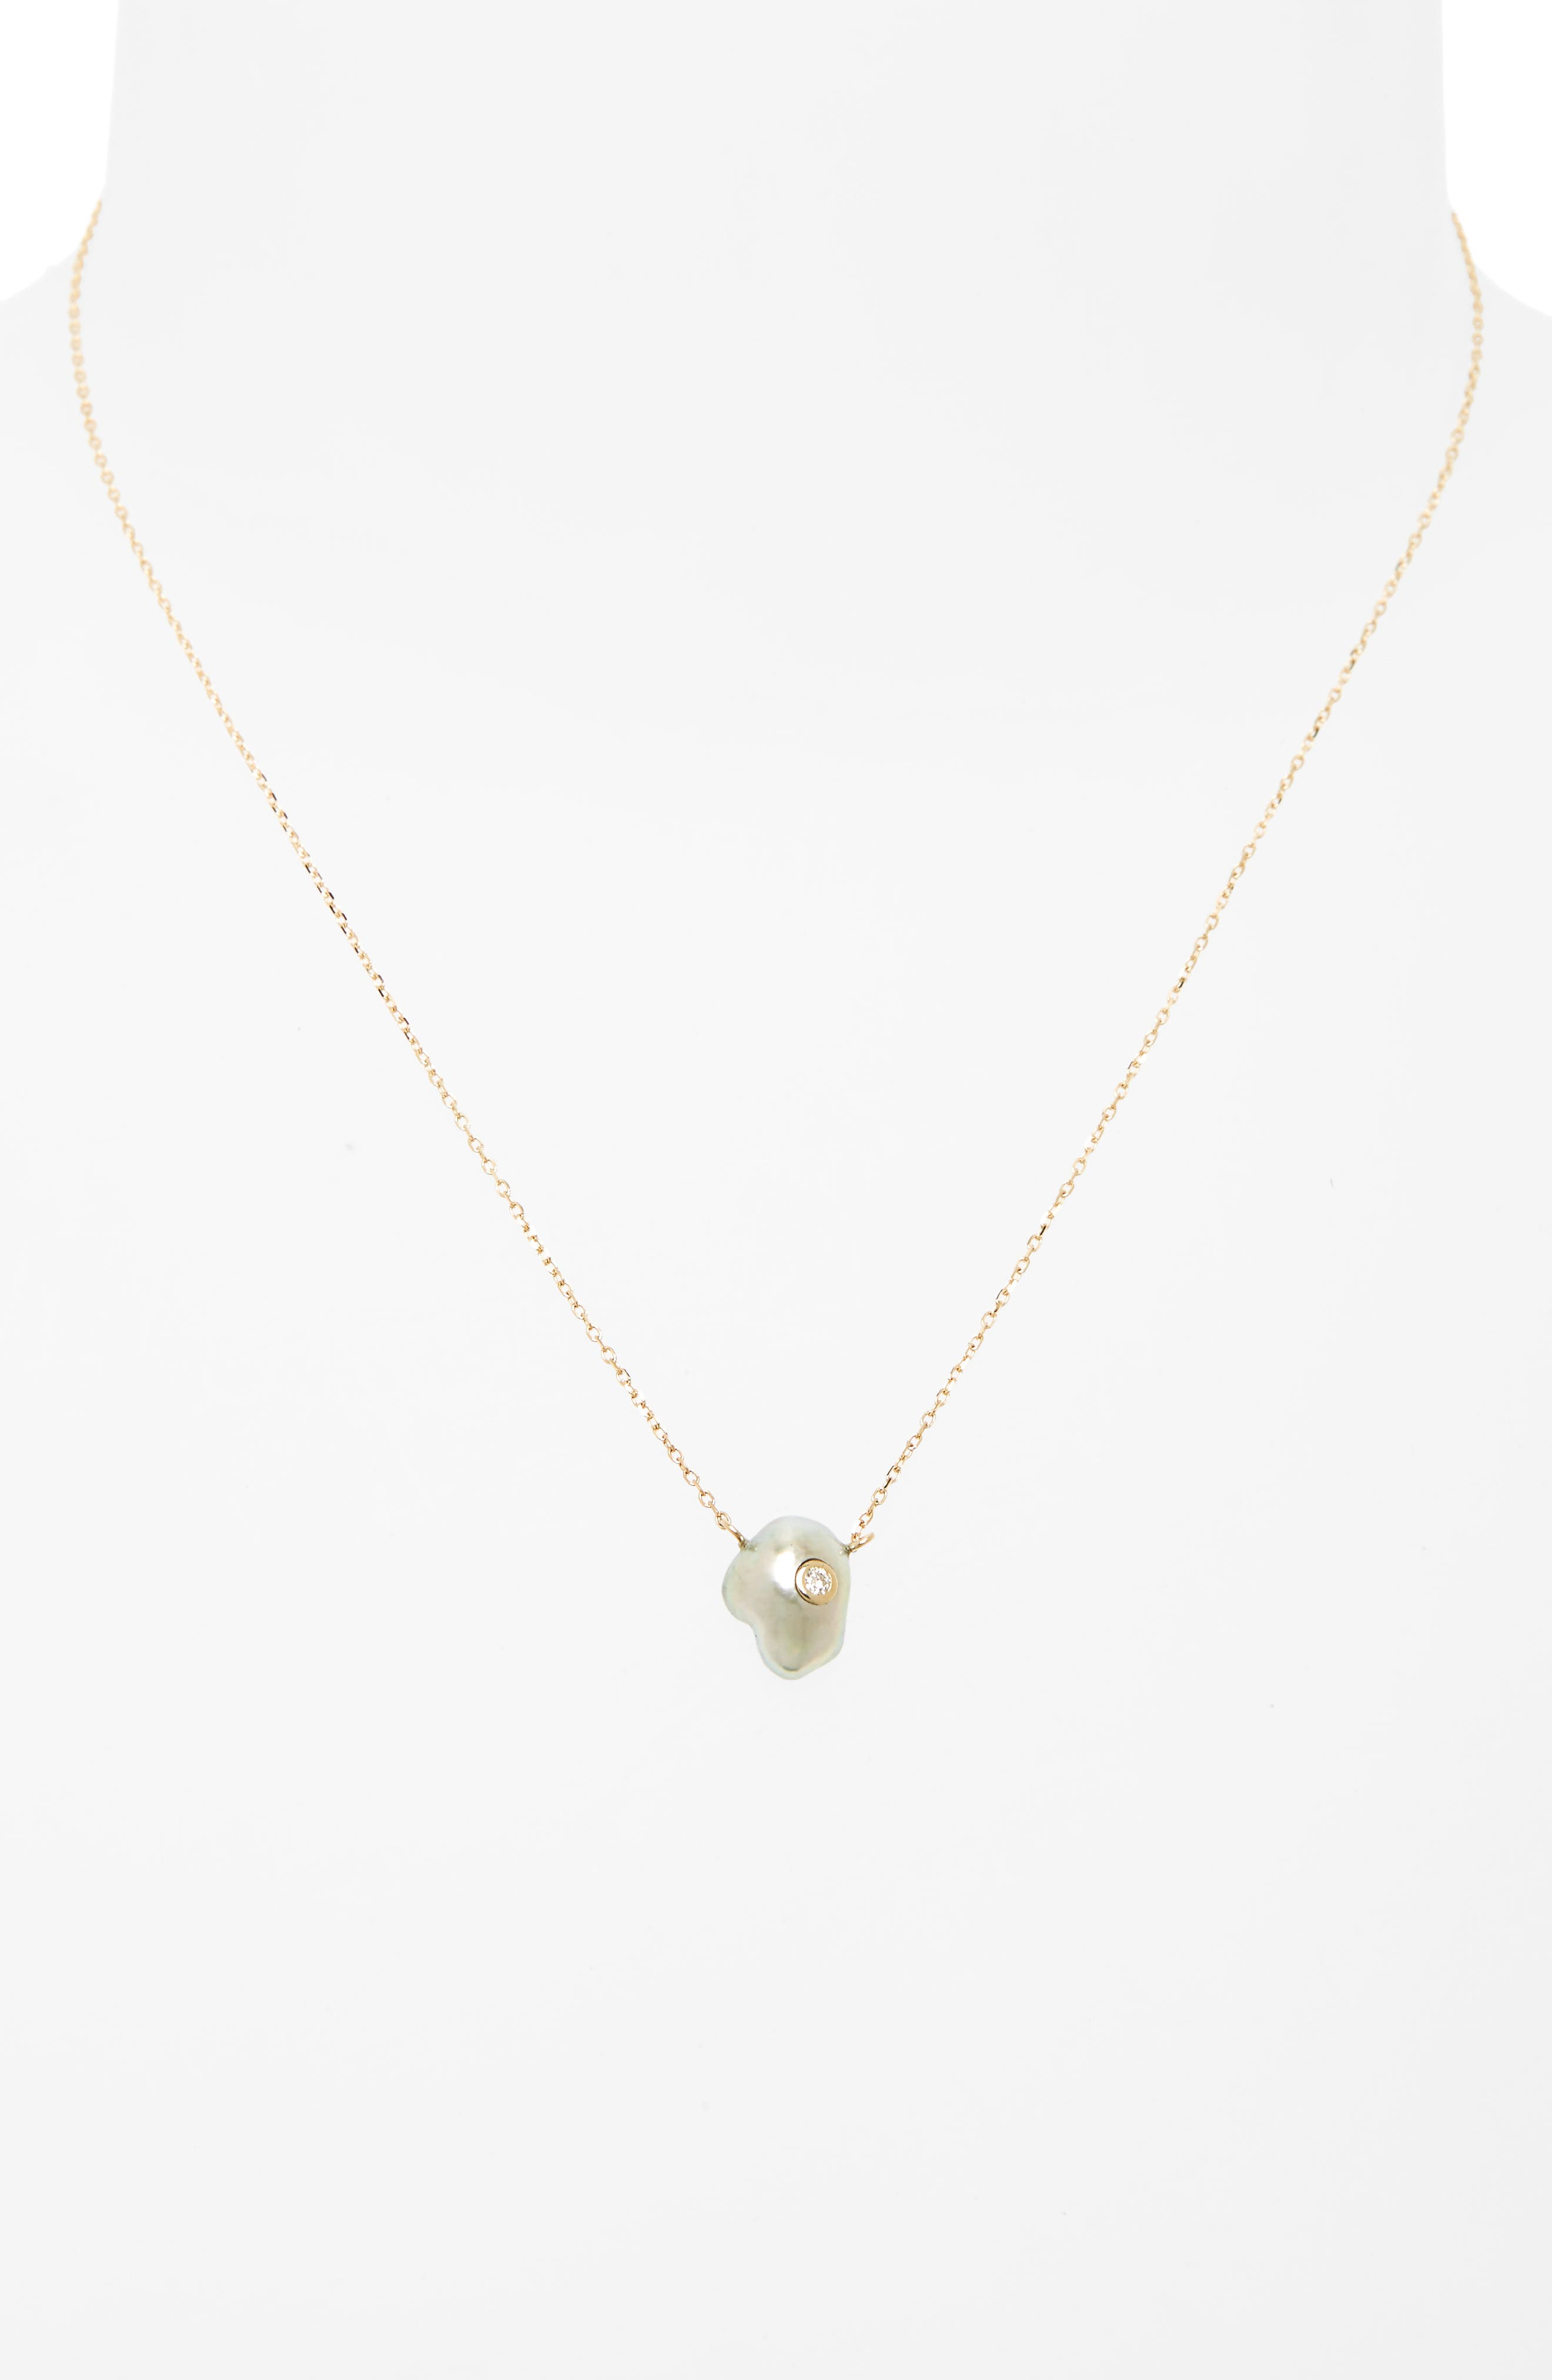 Sea of Beauty Pearl & Diamond Pendant Necklace,                             Alternate thumbnail 2, color,                             YELLOW GOLD/ GREY PEARL